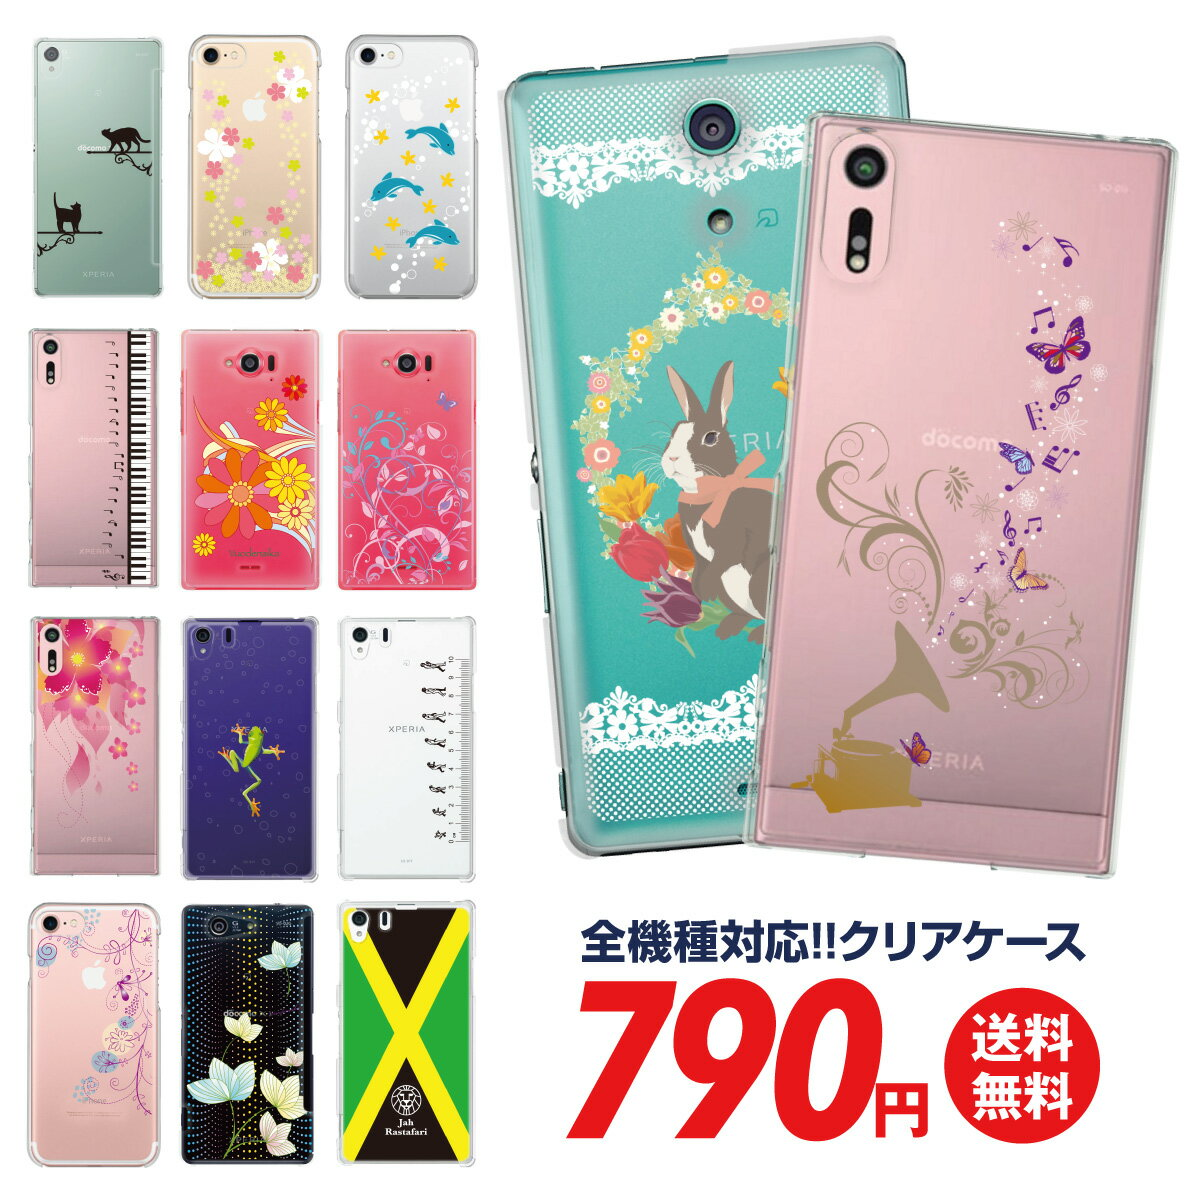 スマホケース 全機種対応 ケース カバー ハードケース クリアケース iPhoneXS Max iPhoneXR iPhoneX iPhone8 Plus iPhone7 iPhone6s iPhone6 Plus iPhone SE 5s Xperia 1 XZ2 XZ1 XZ XZs SO-05K SO-03K aquos R2 R SH-03K SHV42 galaxy S9 S8 sa04